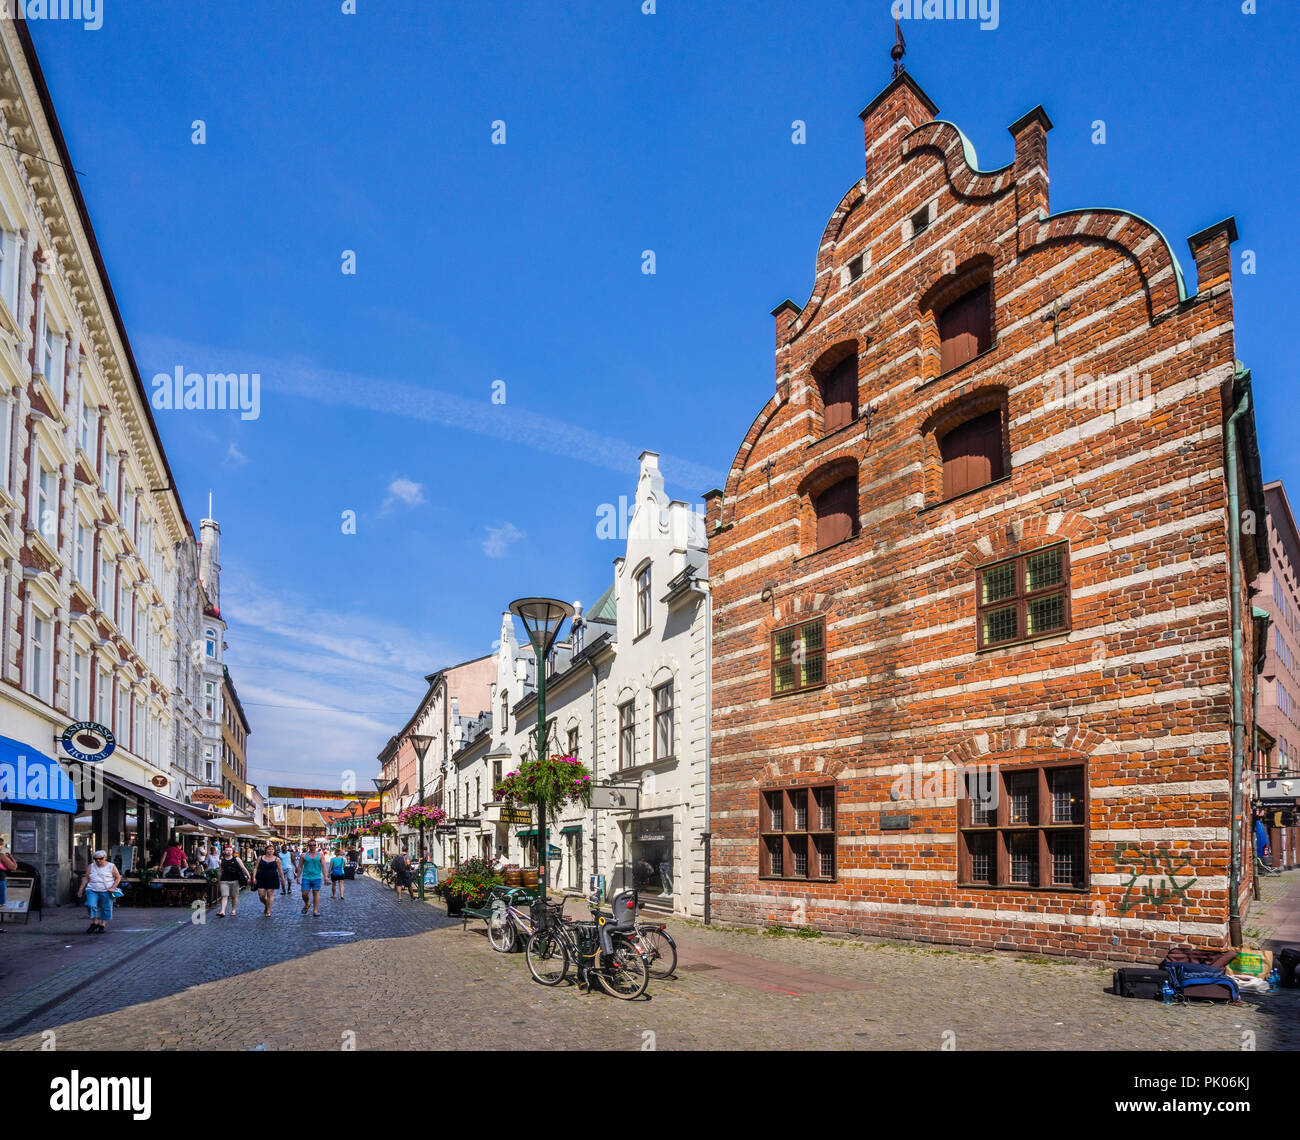 the Flemish House on Södegatan in Malmö, built 1596 in Dutch Renaissance style, it is to this day distinct with its decorative red brick alternating w - Stock Image